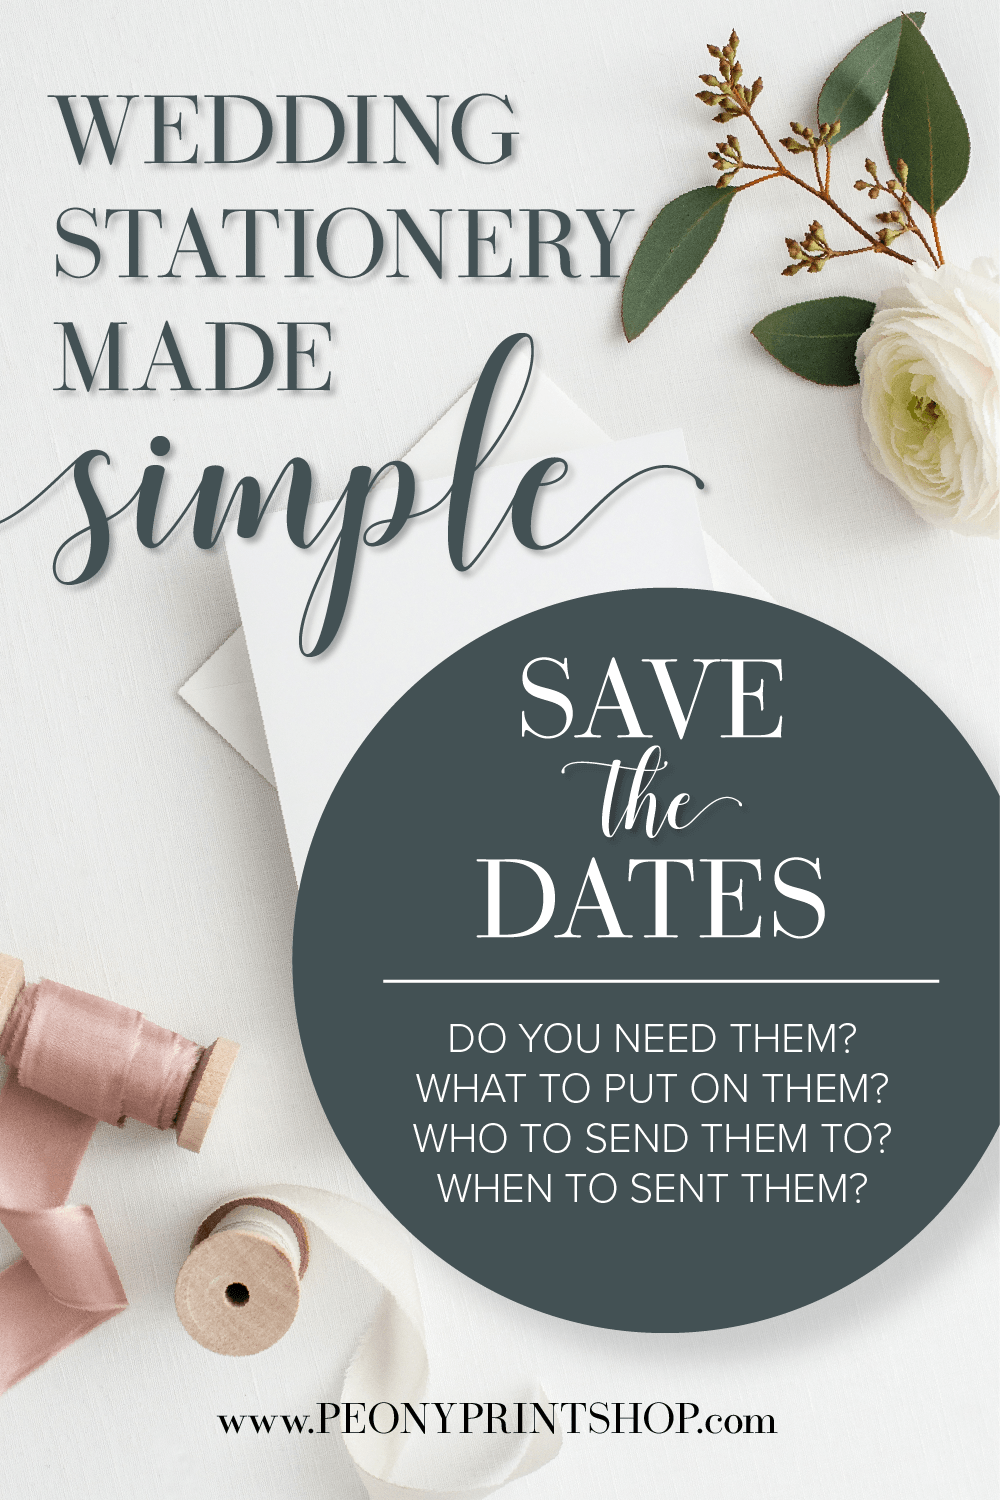 Wedding Stationery Made Simple: Save the Dates | PeonyPrintshop.com | Custom Invitations, Stationery, & Gifting